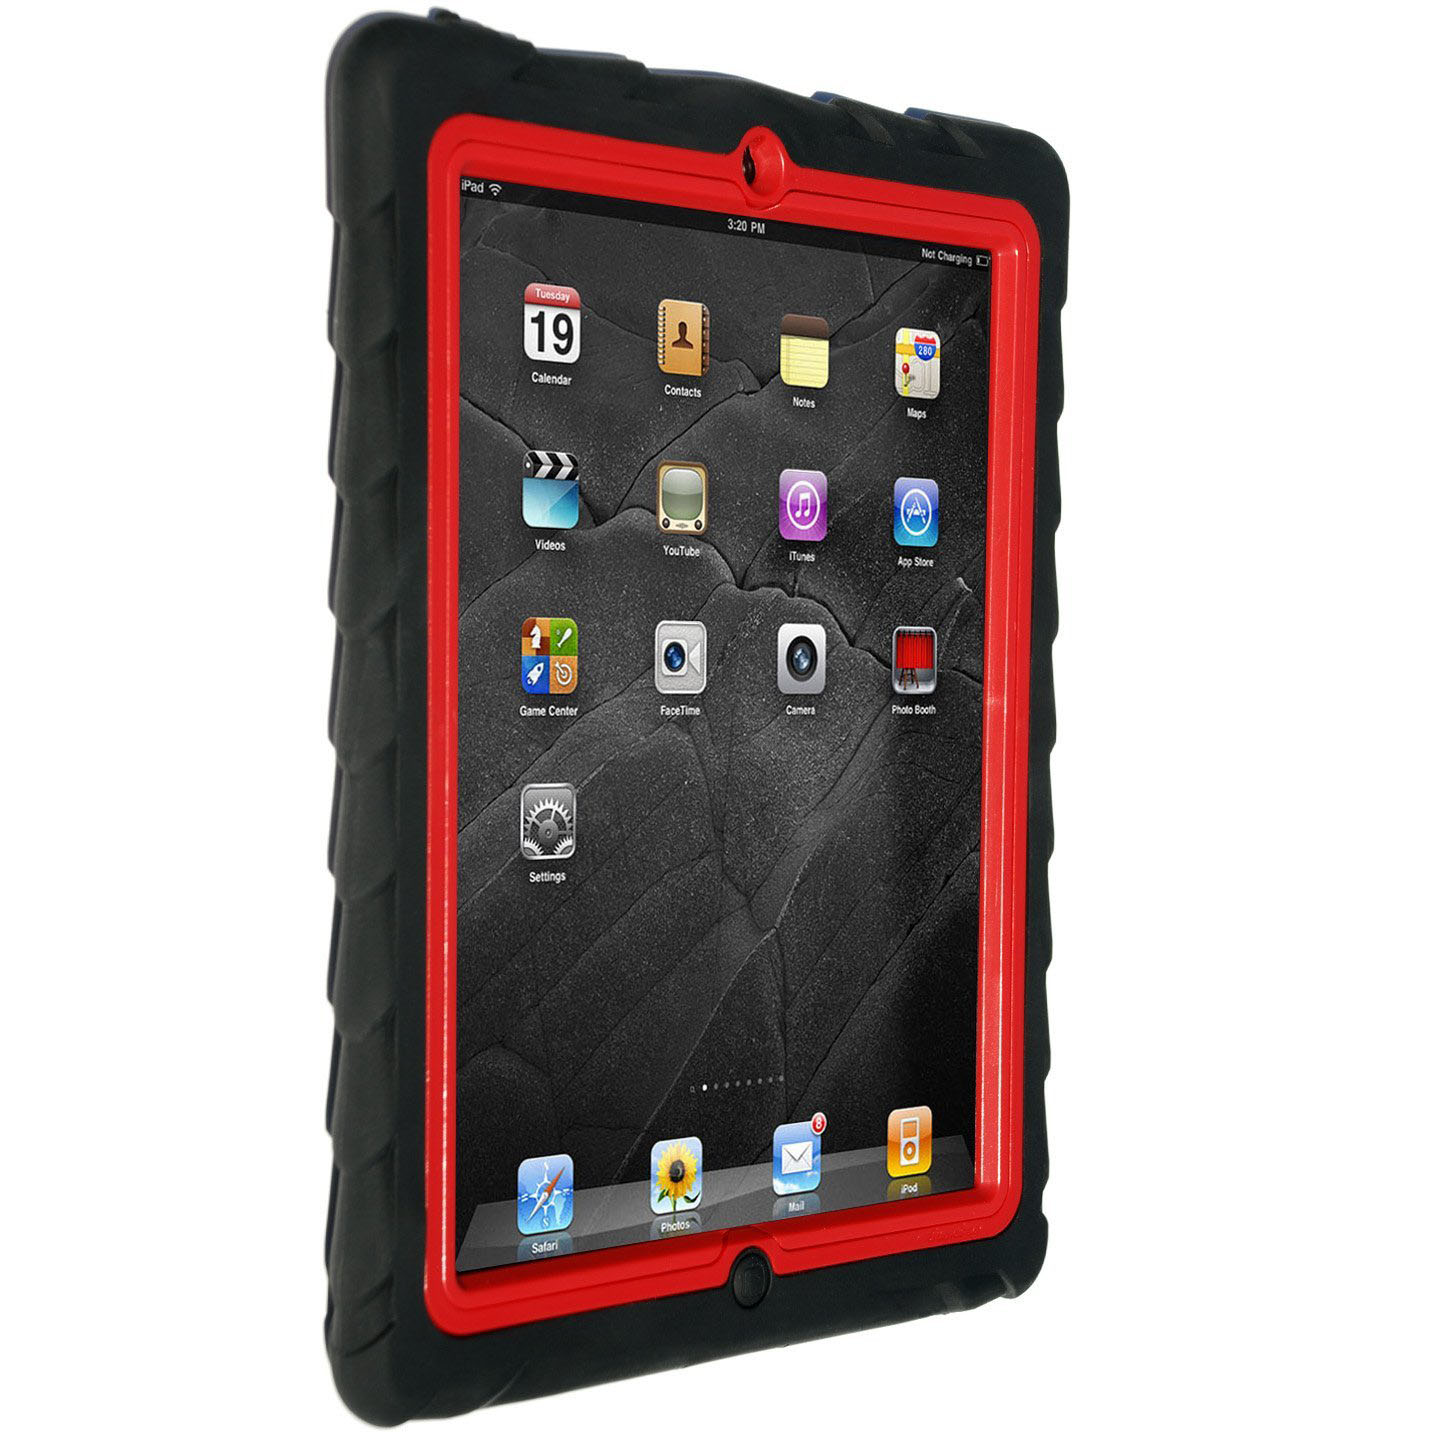 Amazon.com: iPad Mini Case, SUPCASE [Heavy Duty] iPad Mini Retina ...